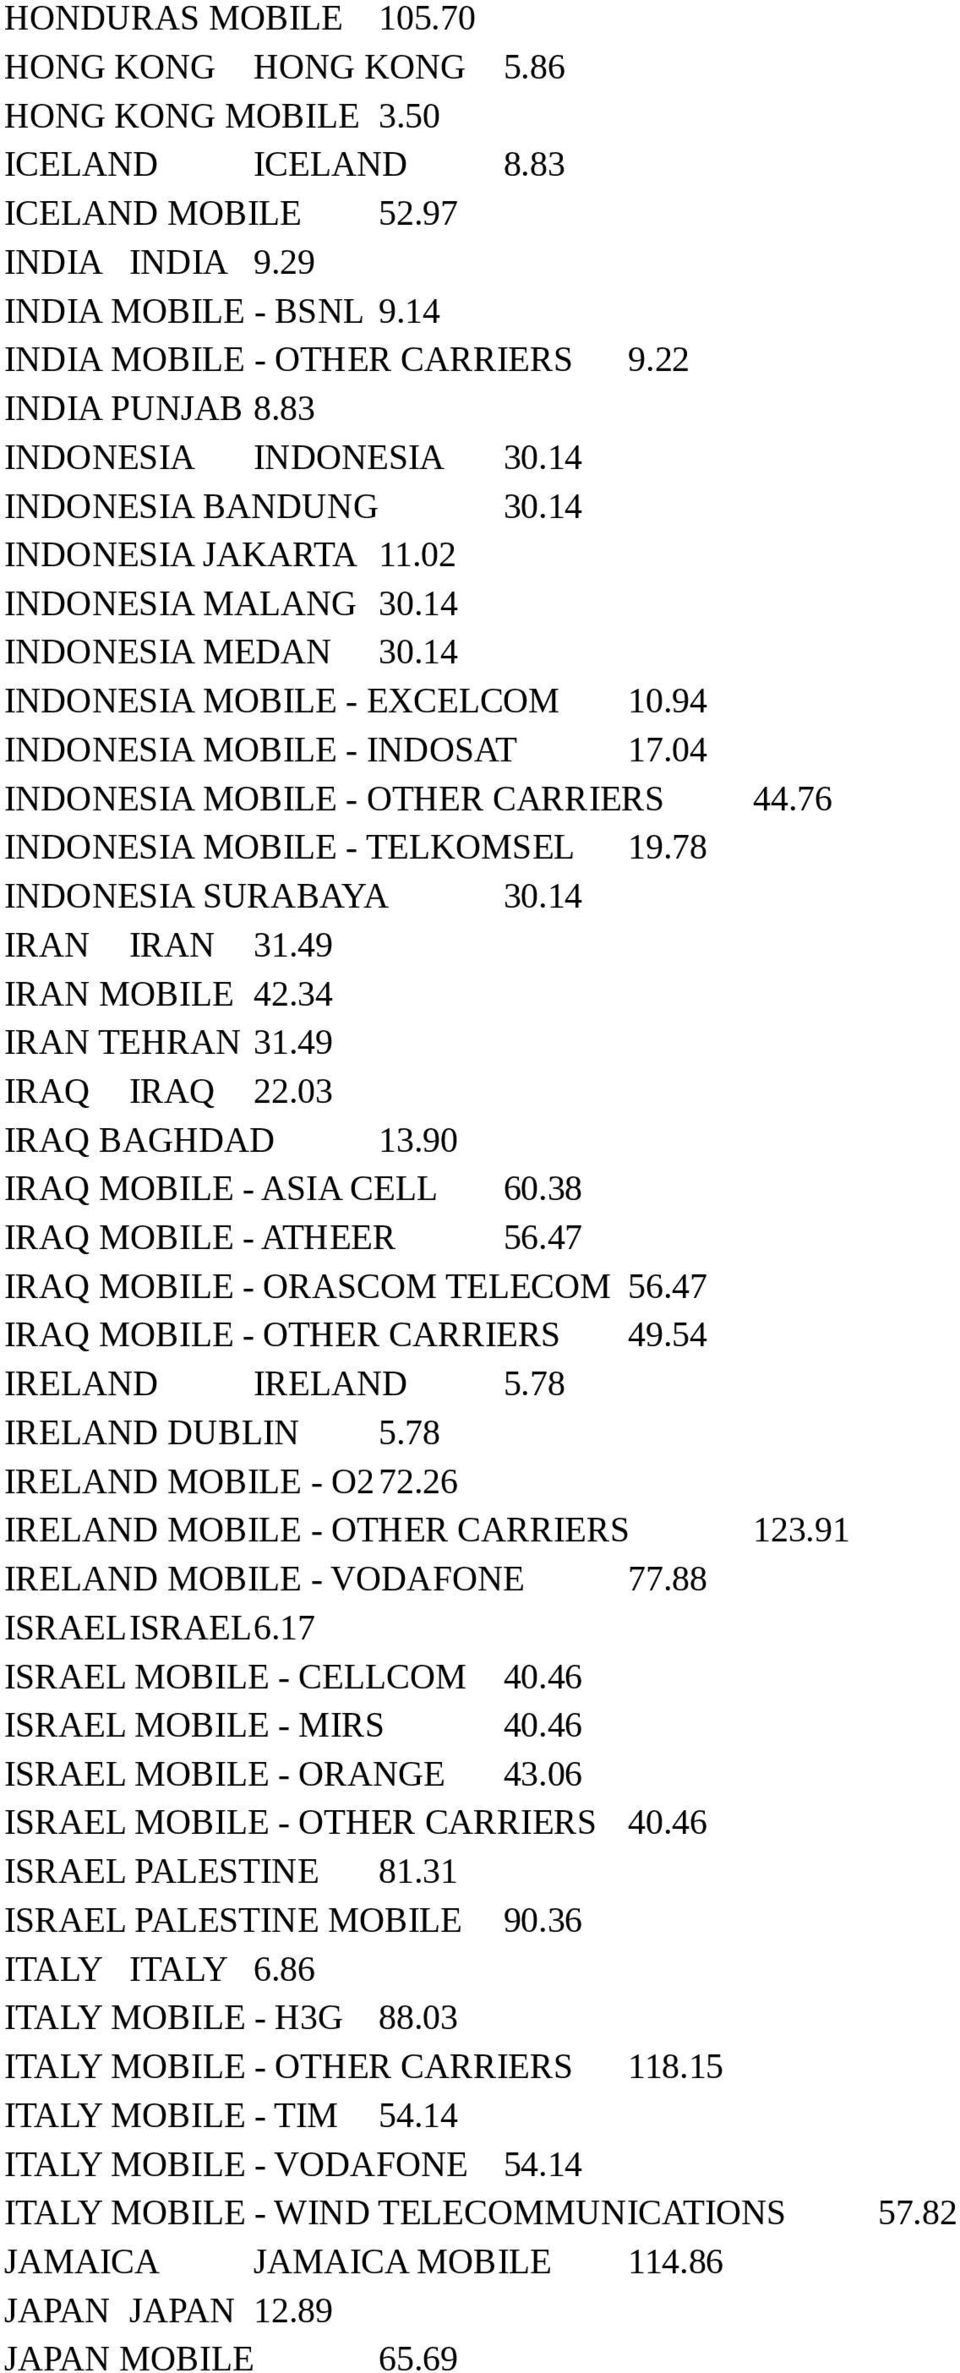 94 INDONESIA MOBILE - INDOSAT 17.04 INDONESIA MOBILE - OTHER CARRIERS 44.76 INDONESIA MOBILE - TELKOMSEL 19.78 INDONESIA SURABAYA 30.14 IRAN IRAN 31.49 IRAN MOBILE 42.34 IRAN TEHRAN 31.